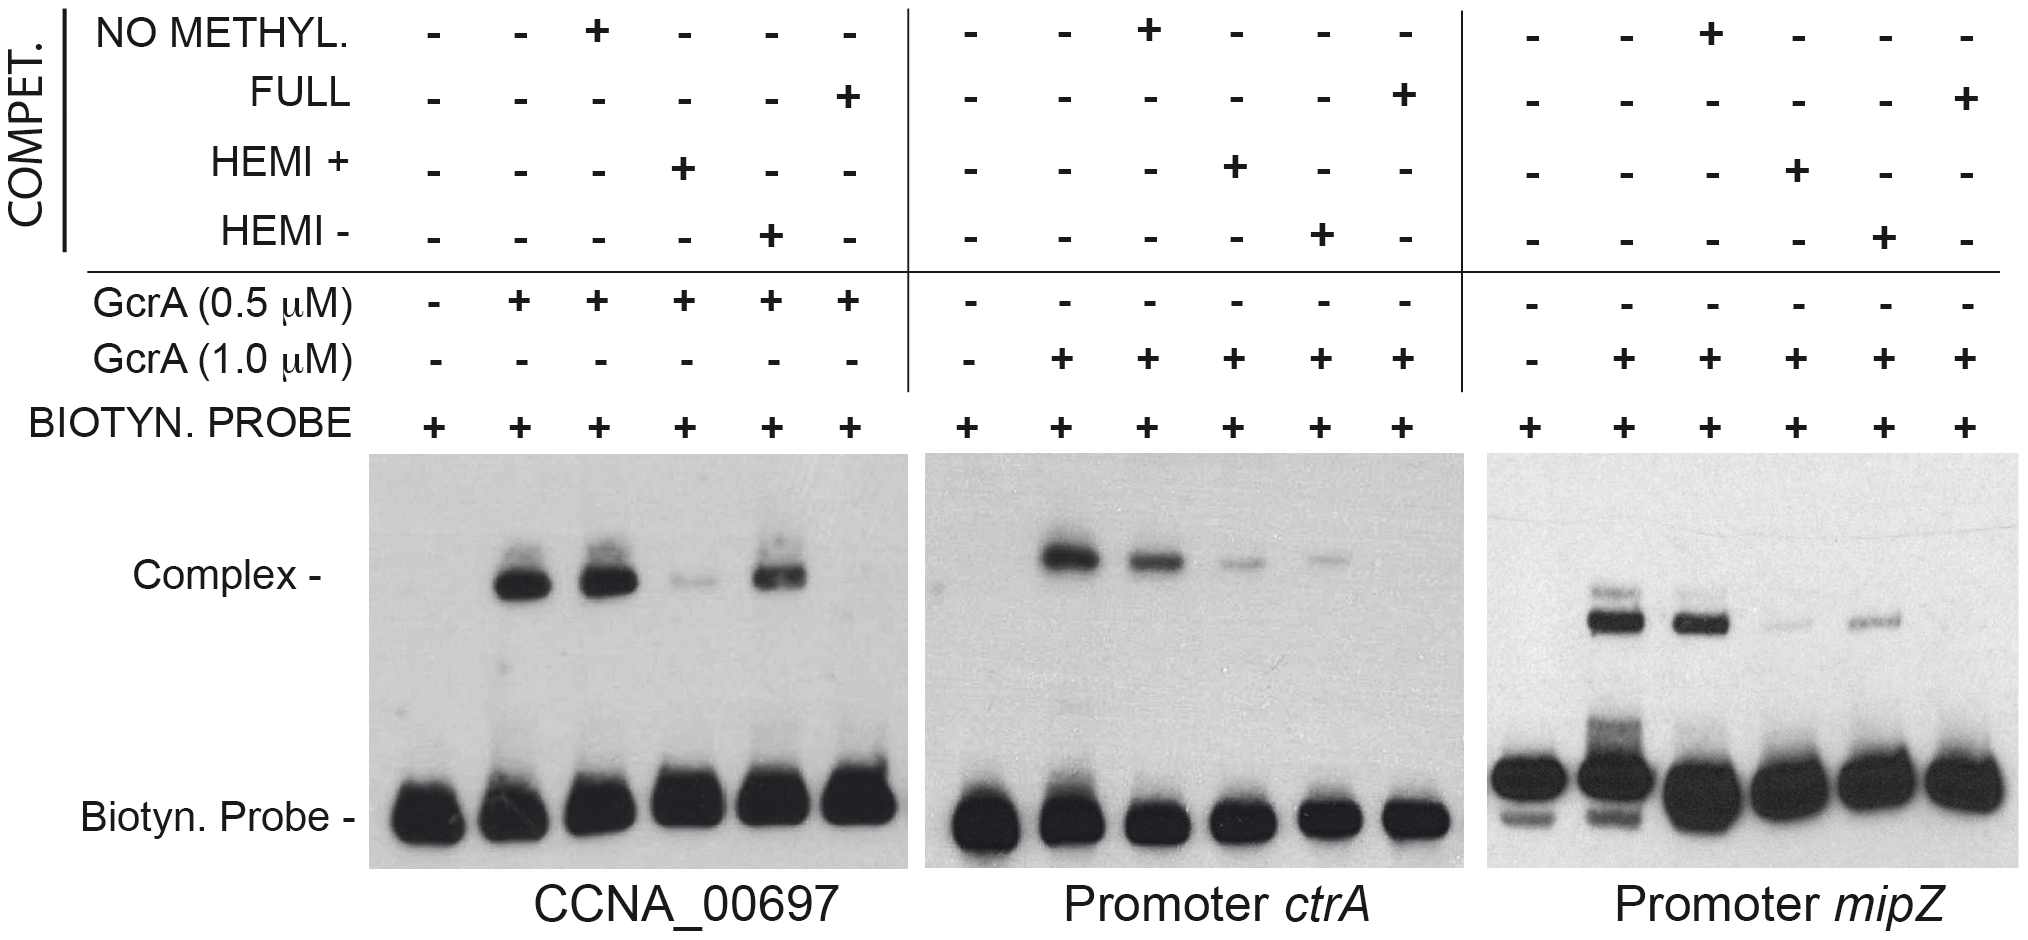 GcrA DNA binding depends on CcrM methylation state.